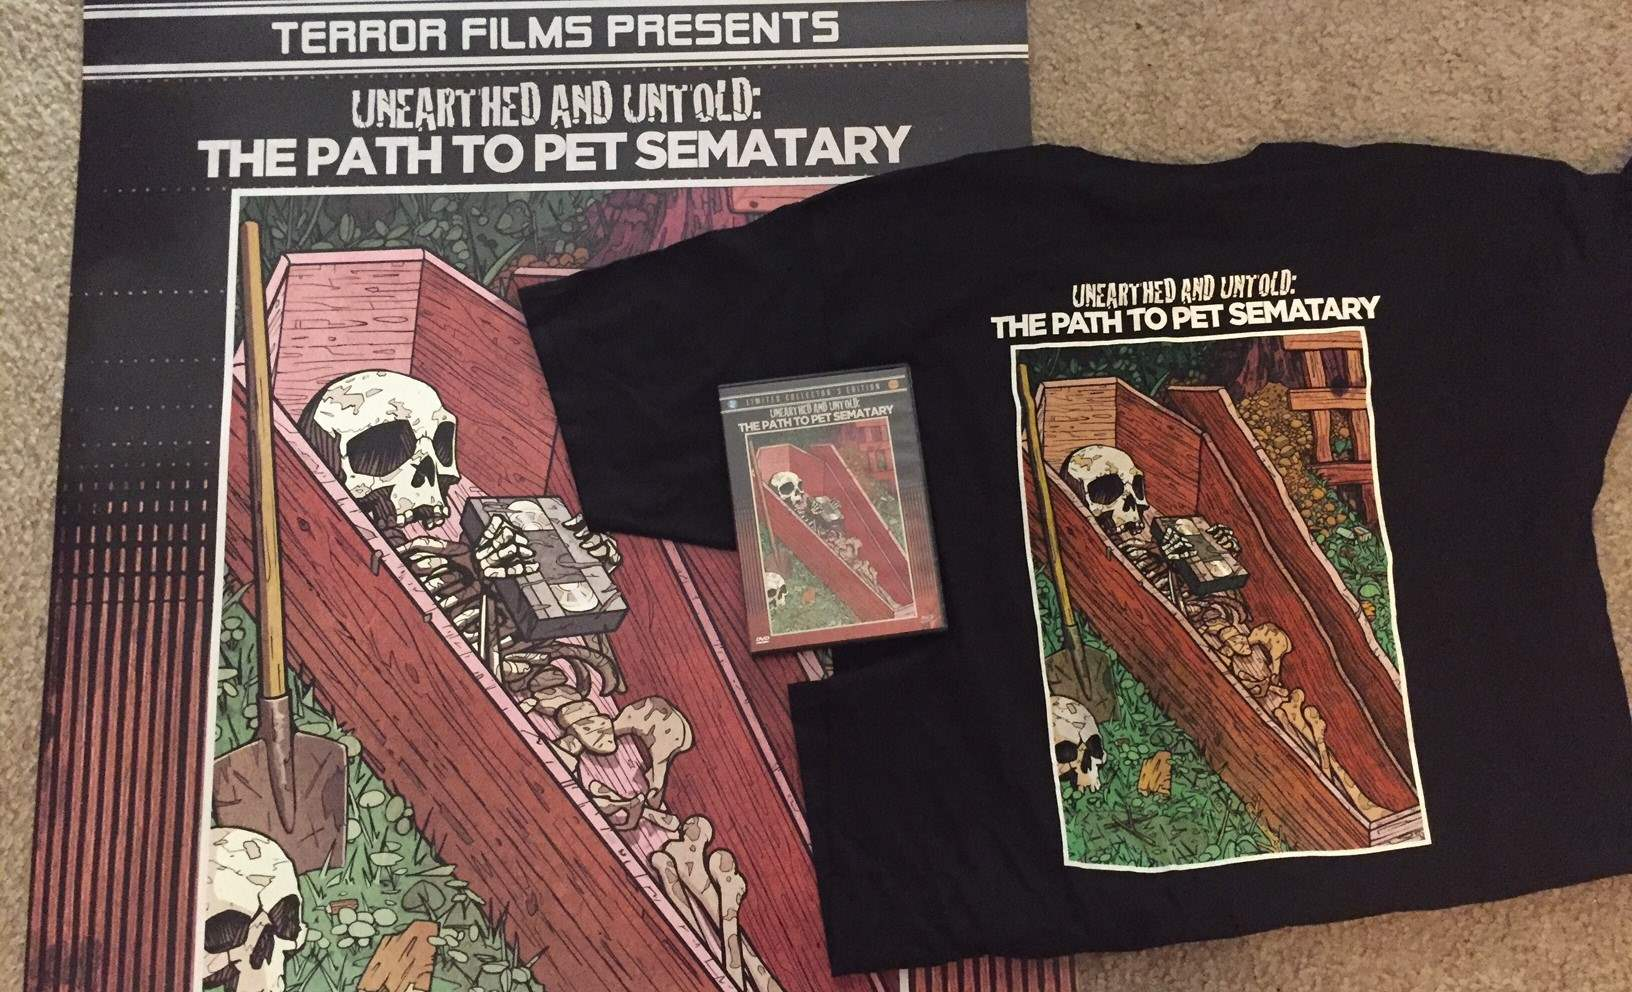 The bundle pack for Unearthed and Untold with DVD/Blu-ray, poster, and t-shirt